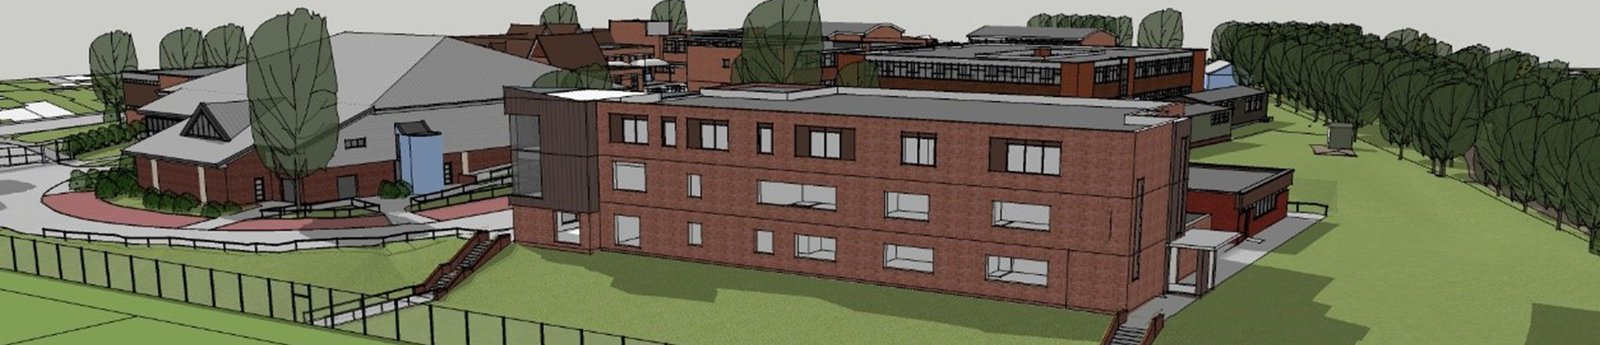 Design for the Hailsham Community College Academy Trust, to be built by Morgan Sindall Construction